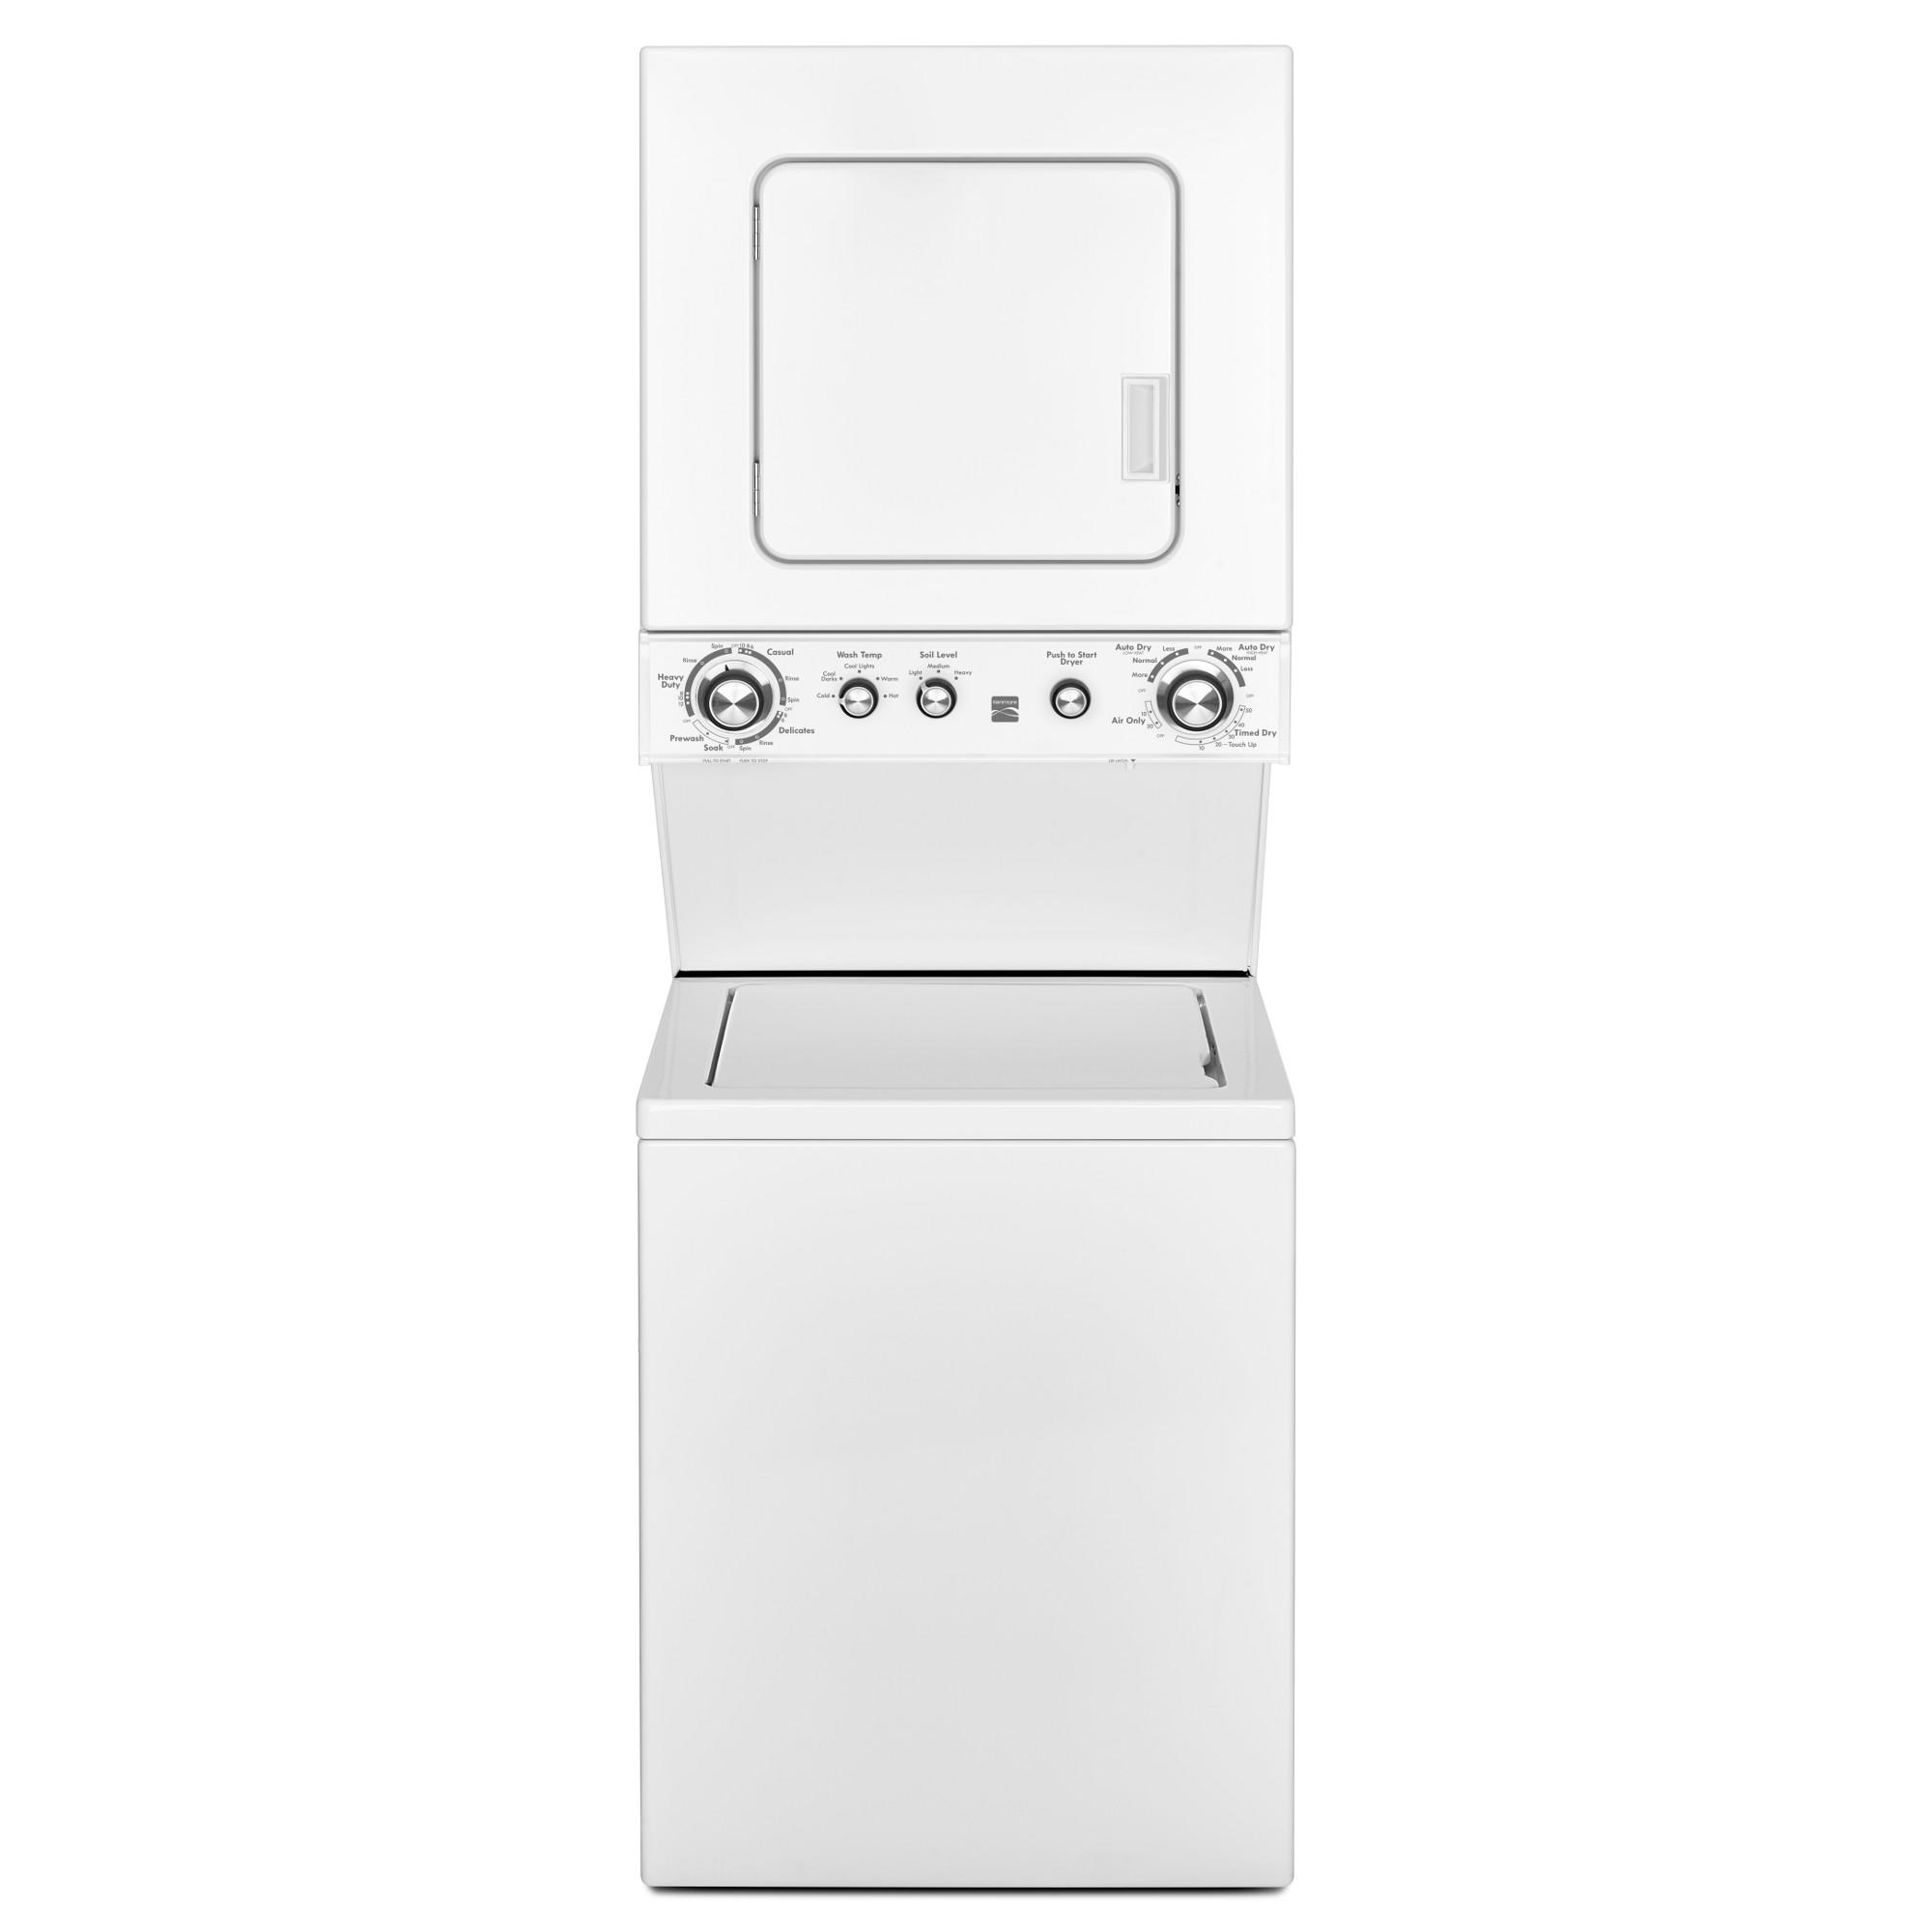 Kenmore 81432 24 3.8 cu. ft. Electric Laundry Center - White